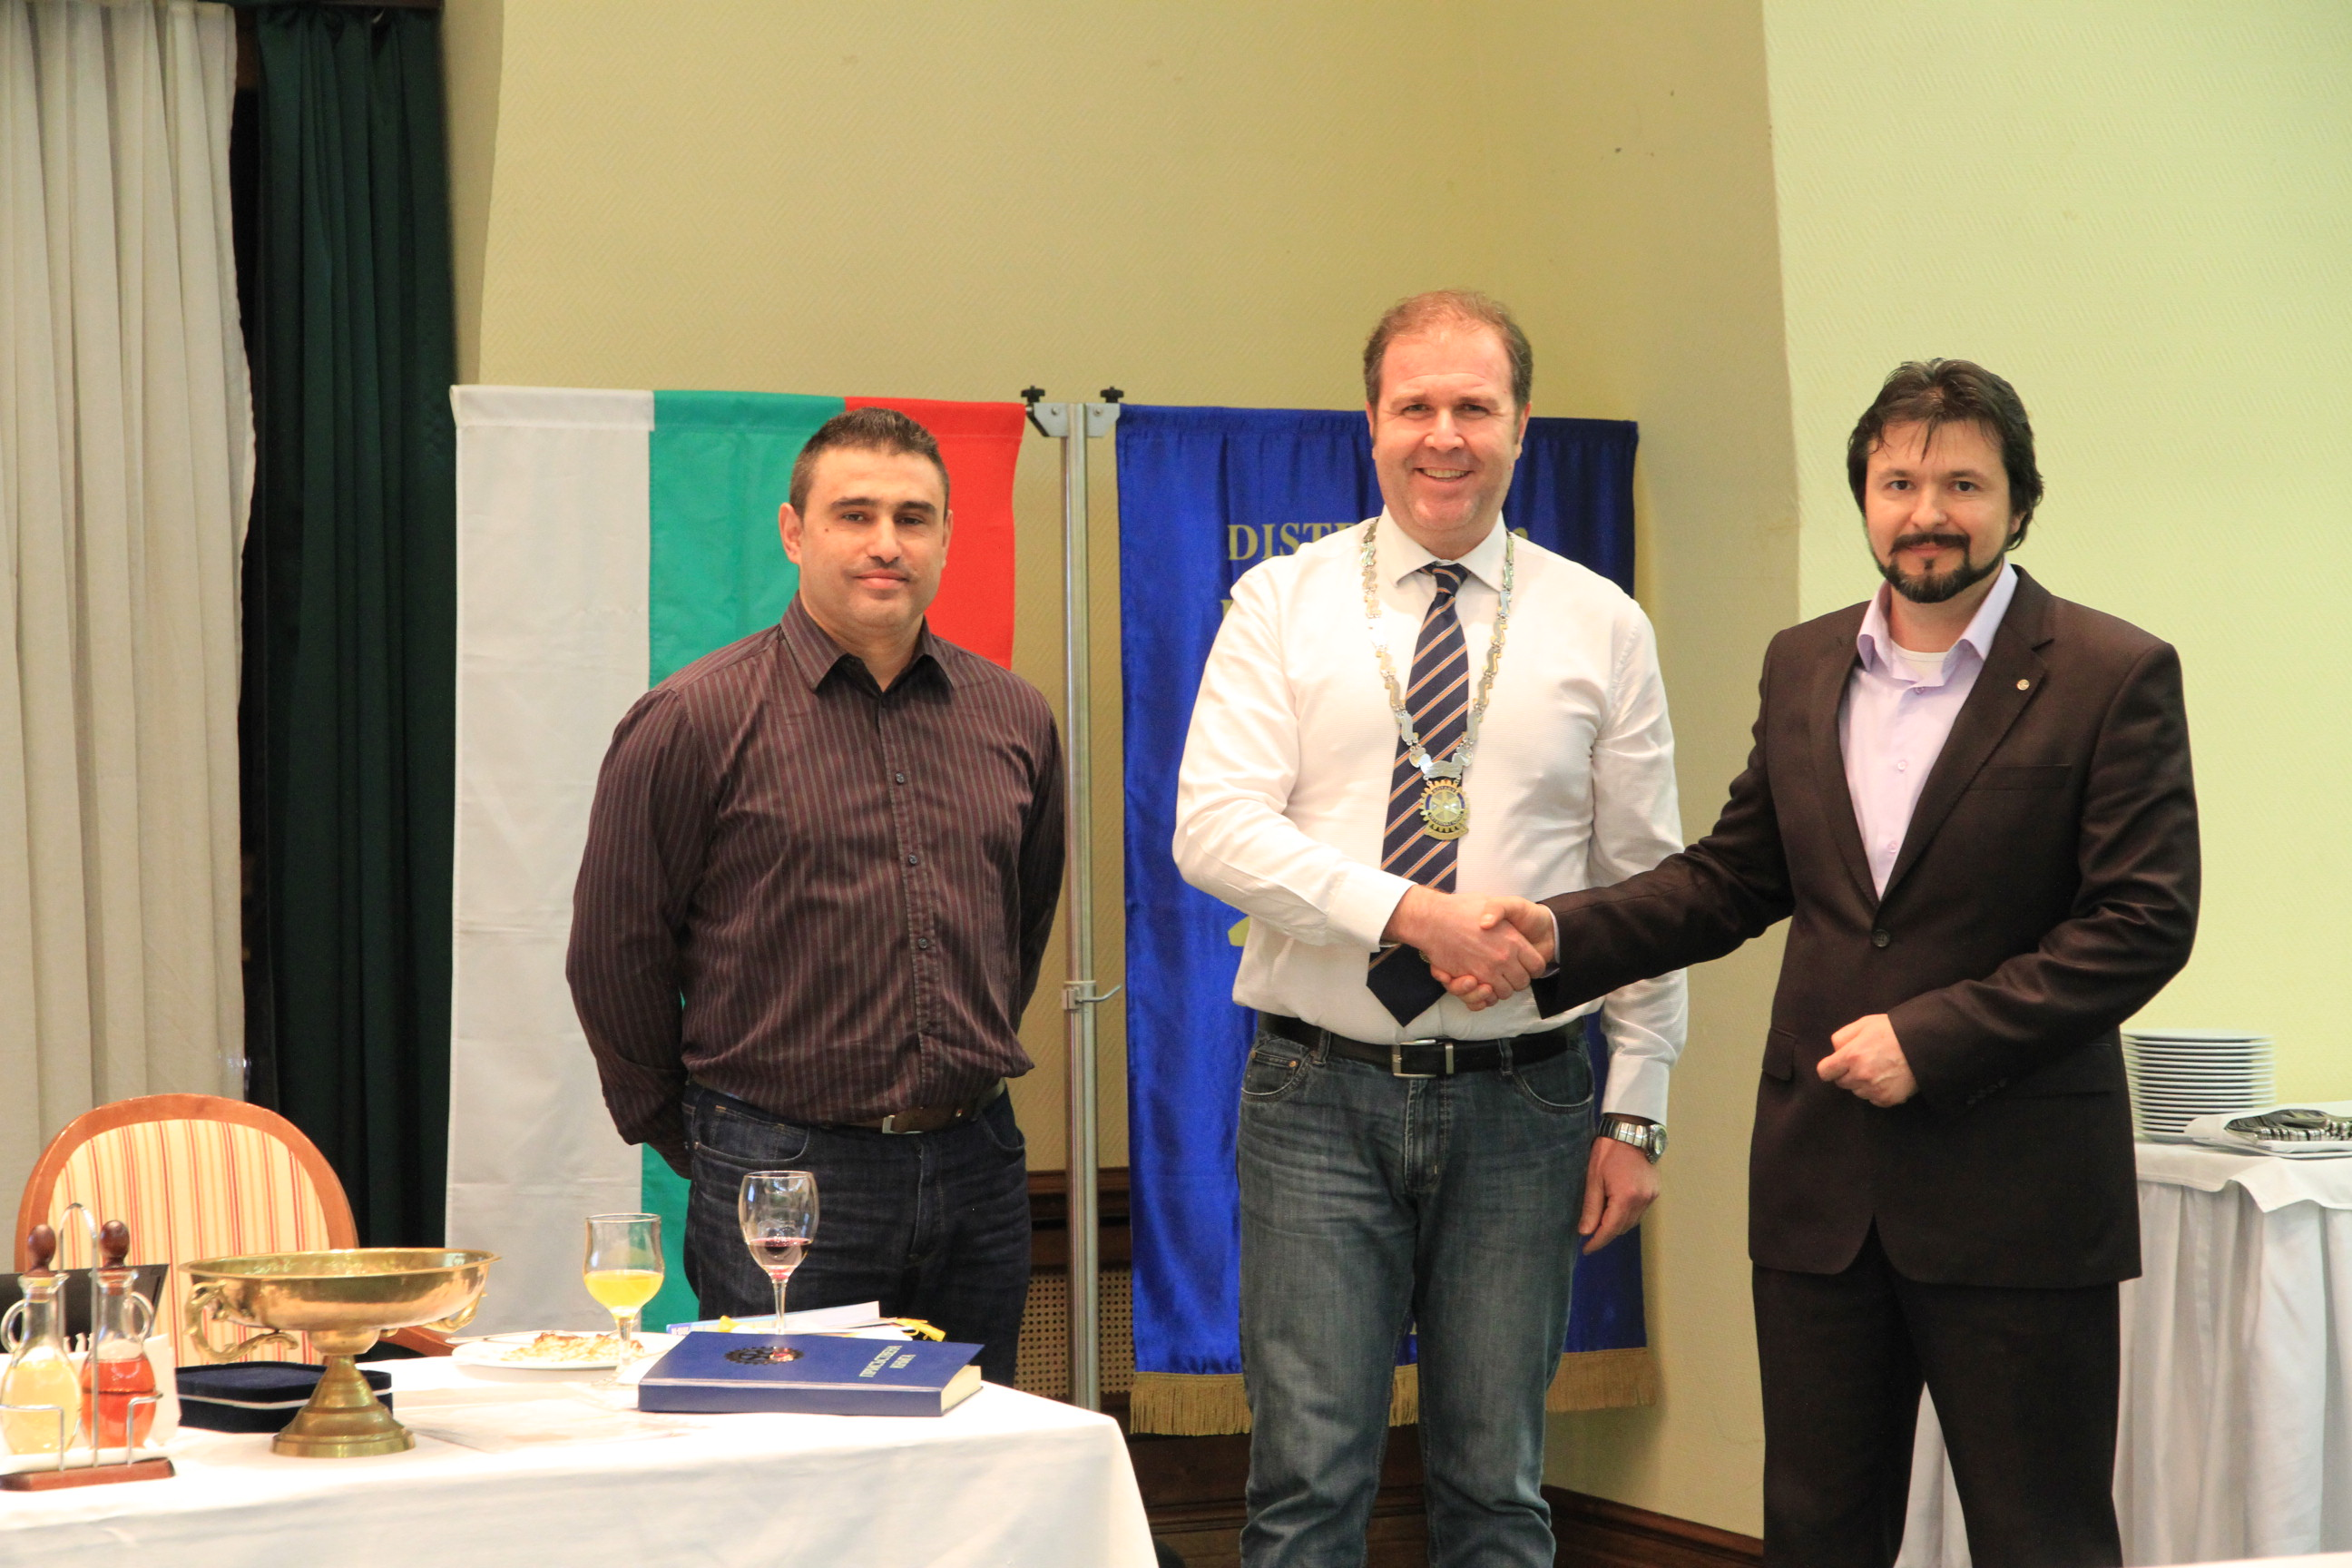 Attorney Asen Delchev is the new member of Rotary Club Plovdiv Puldin